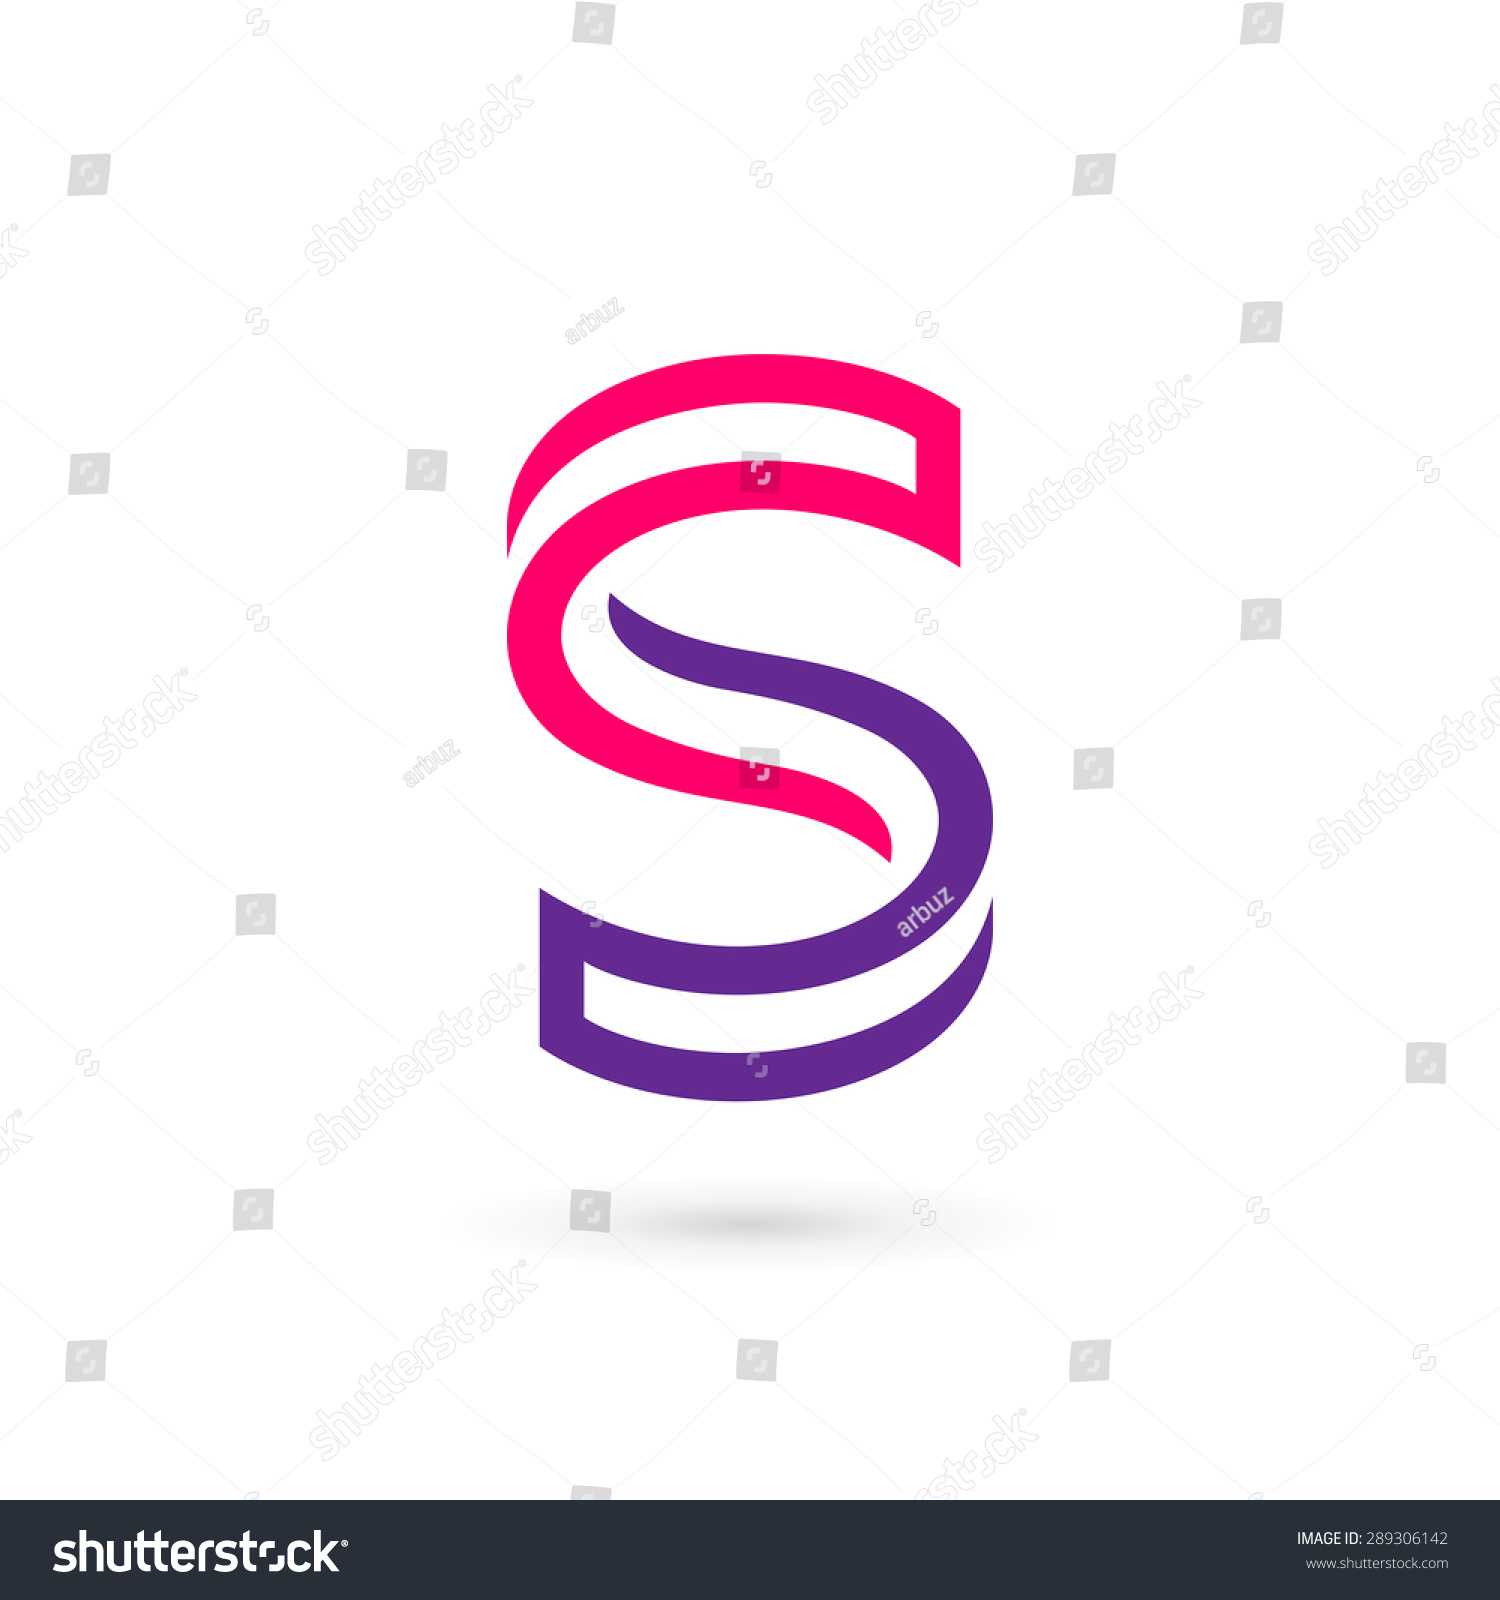 Letter s logo icon design template stock vector 289306142 for S design photo